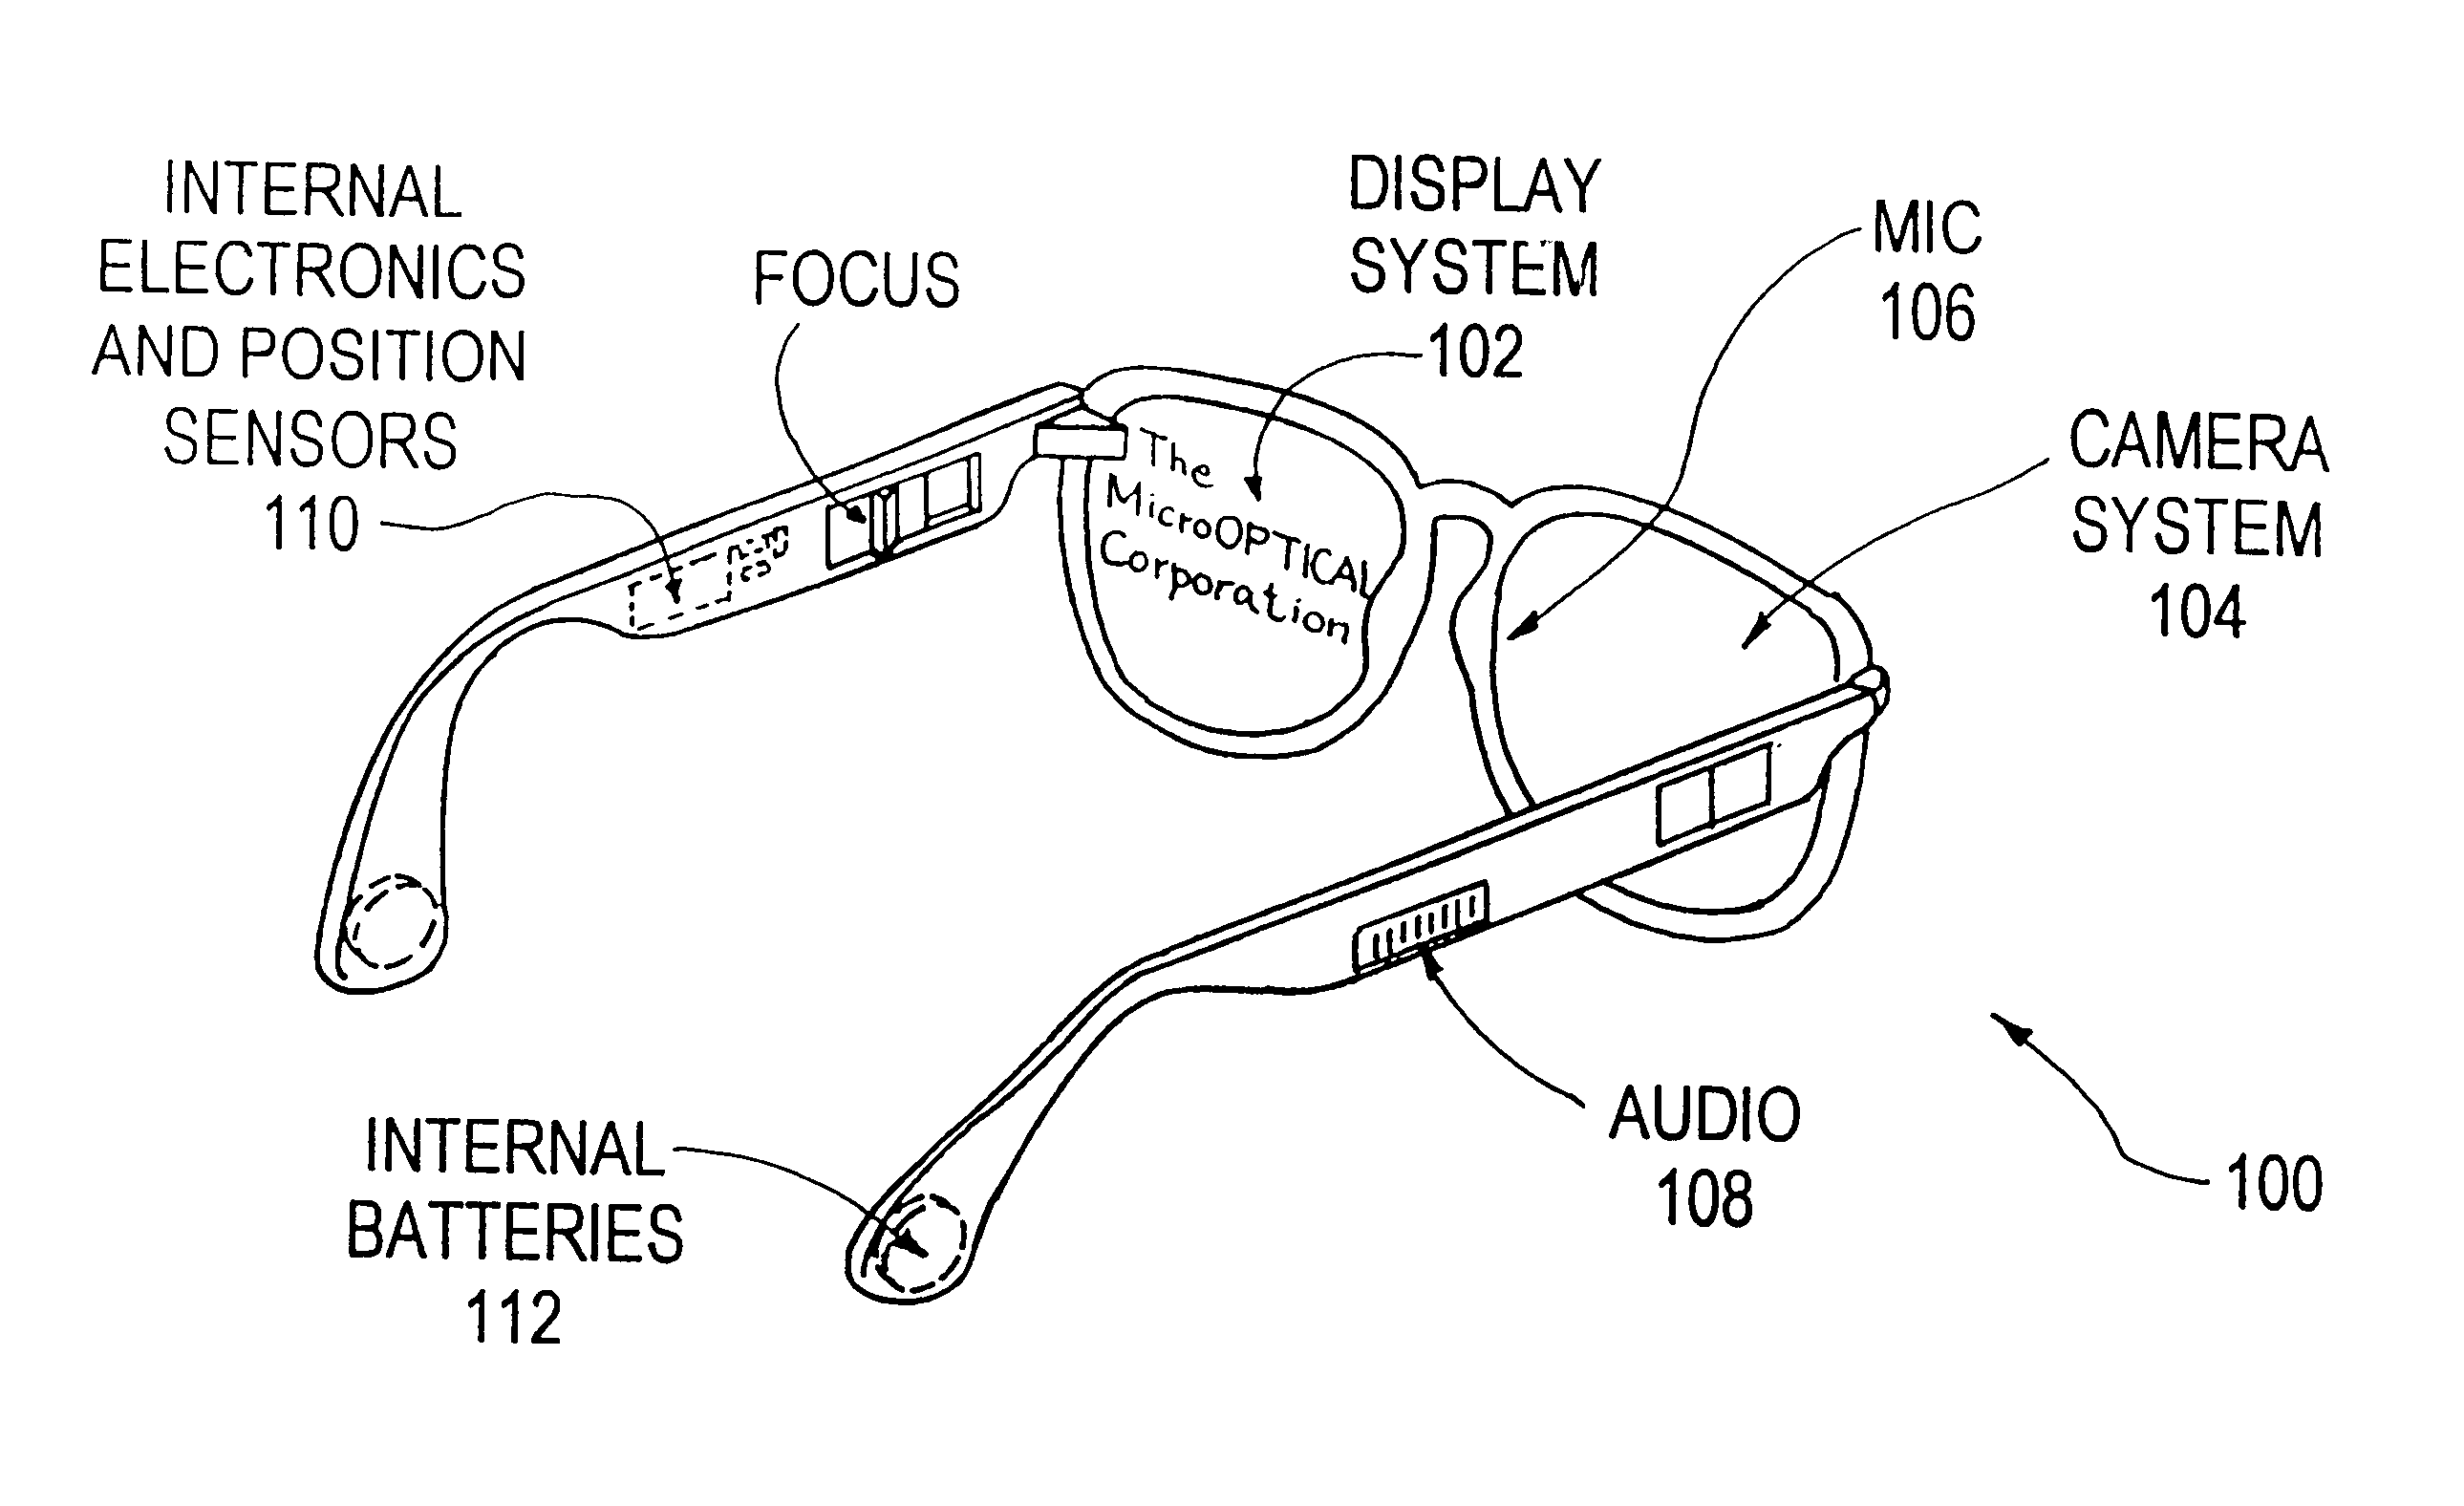 Eyeglass Frame Diagram : Patent US6349001 - Eyeglass interface system - Google Patents